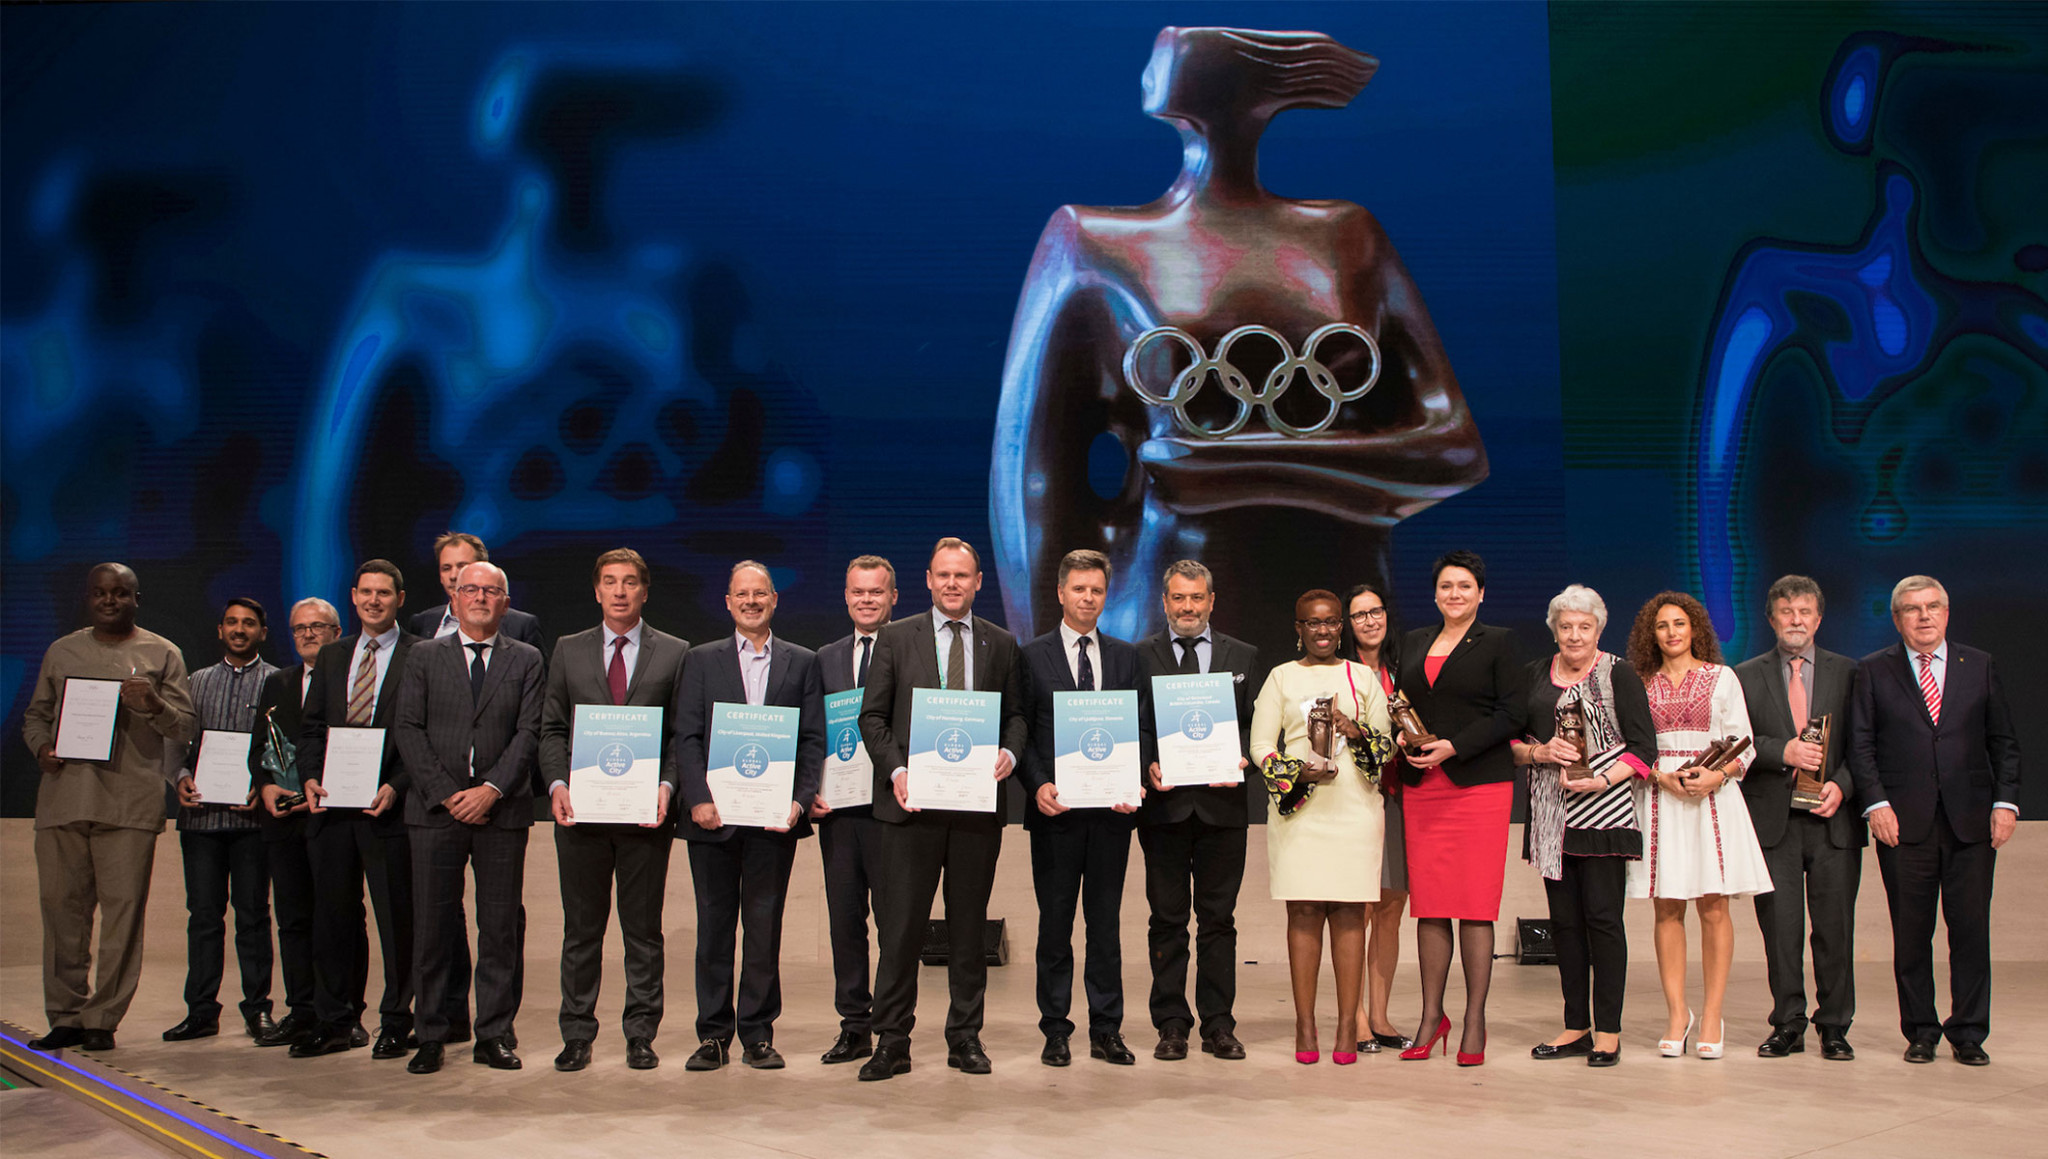 IOC Women in Sport and Lifetime Coaching achievements awards were handed out ©IOC